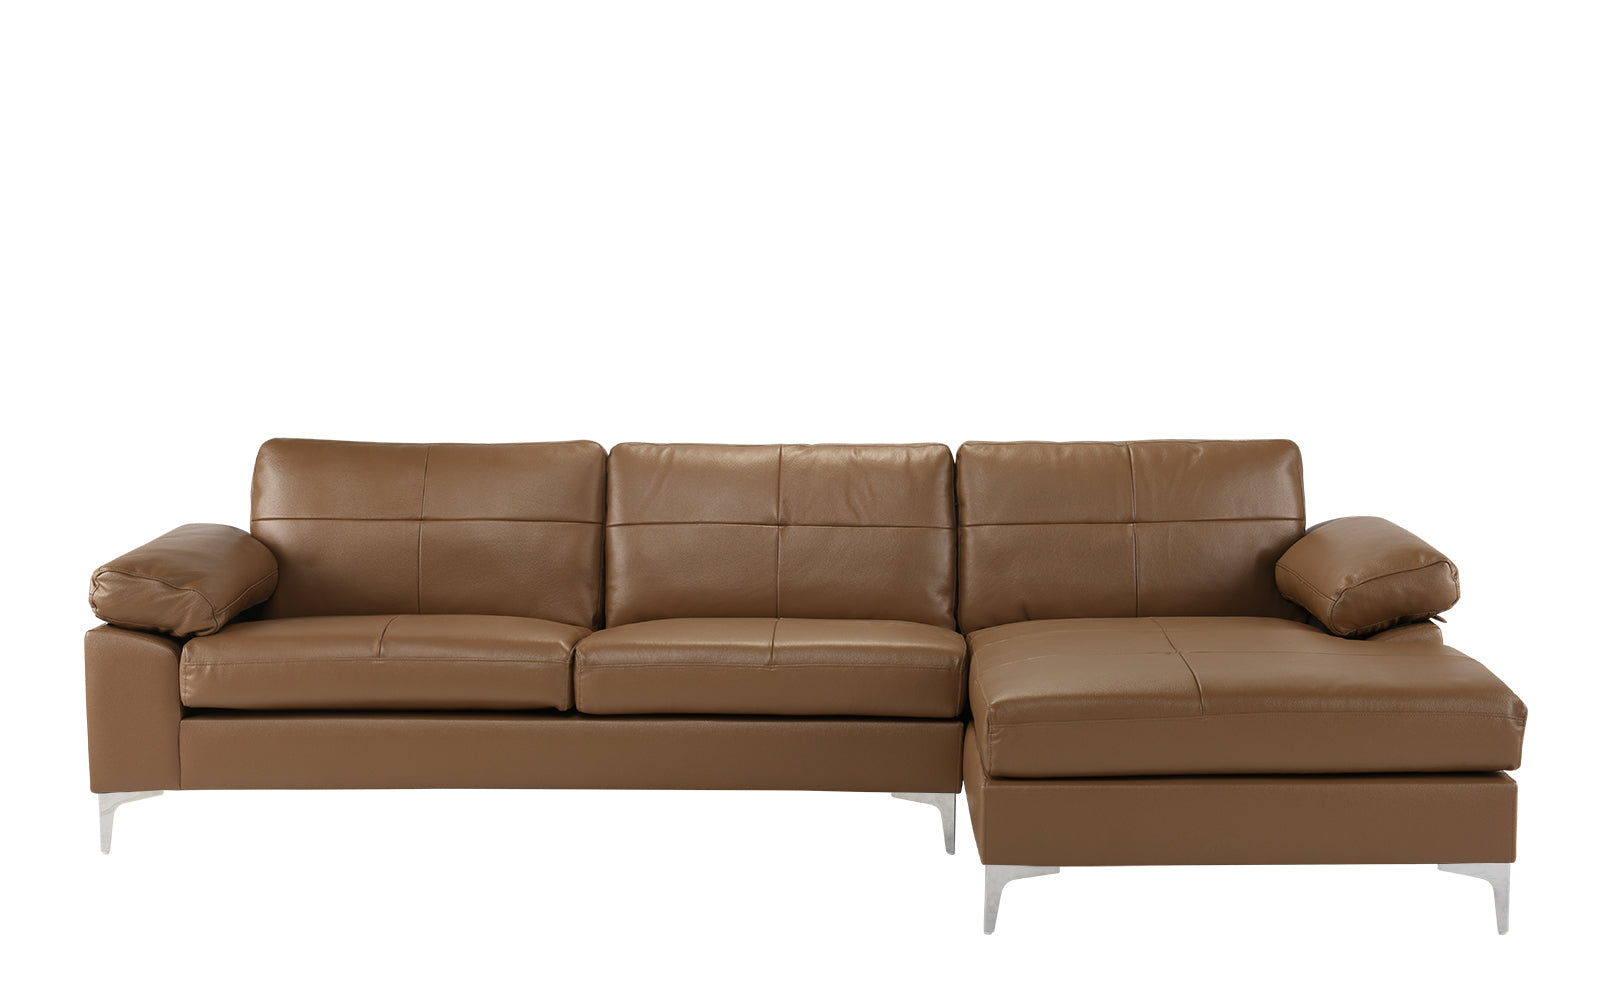 Leather L Shape Sectional Sofa Right Chaise Image